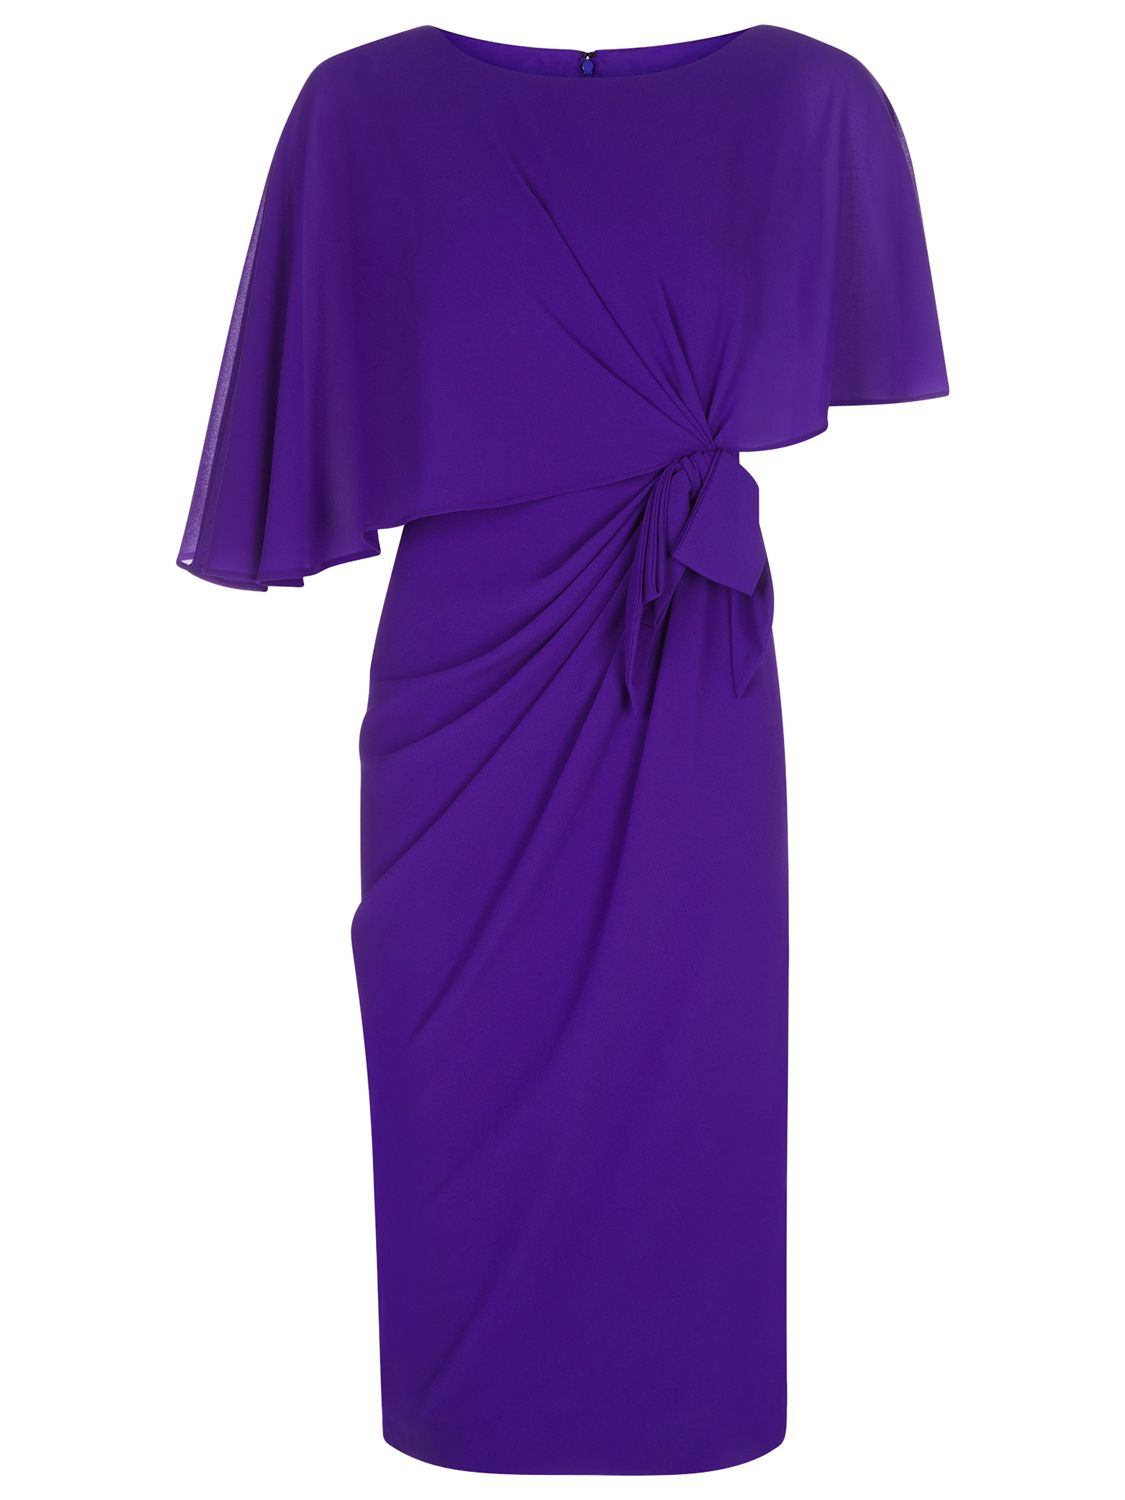 jacques vert one layer tie dress bright purple, jacques, vert, layer, tie, dress, bright, purple, jacques vert, 12|18|20|16|14|10, women, womens dresses, gifts, wedding, wedding clothing, female guests, 1929791